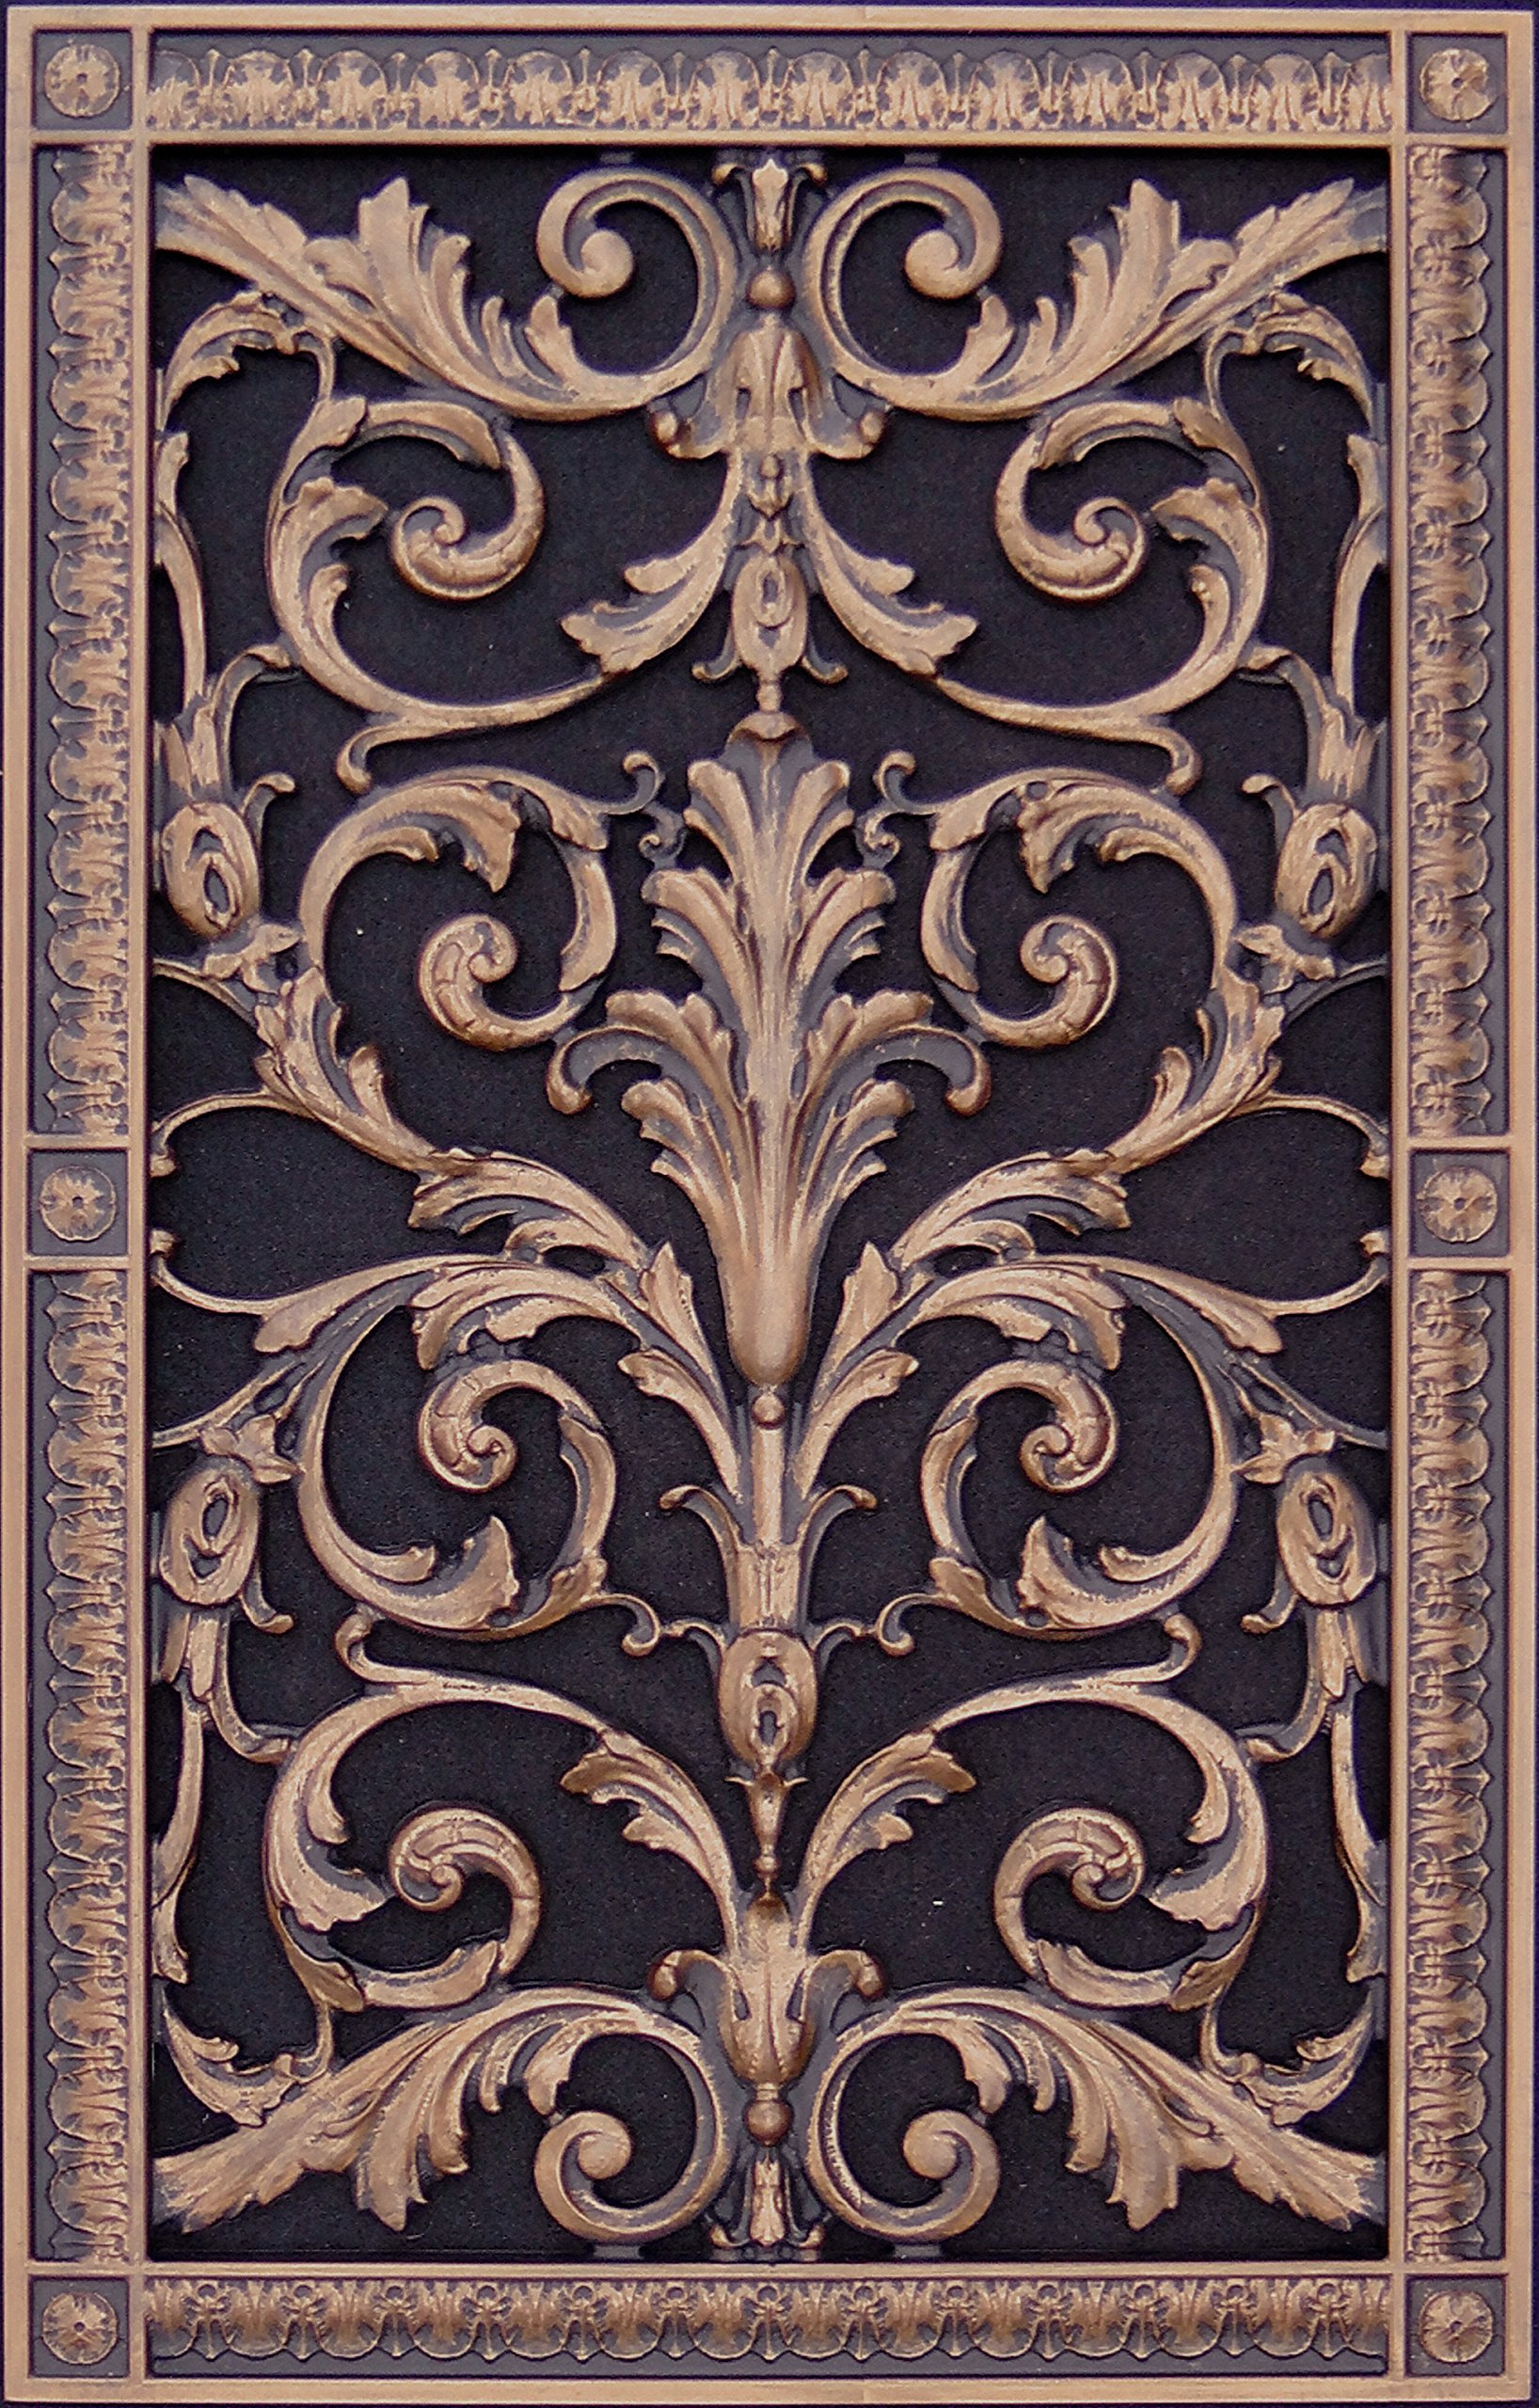 """Decorative Vent Cover, Grille, made of Urethane Resin in Louis XIV, French style fits over a 20""""x 12"""", Total size, 22"""" by 14"""", for wall & ceiling installation only. (not for floors) (Rubbed Bronze) by Beaux-Artes, Ltd."""